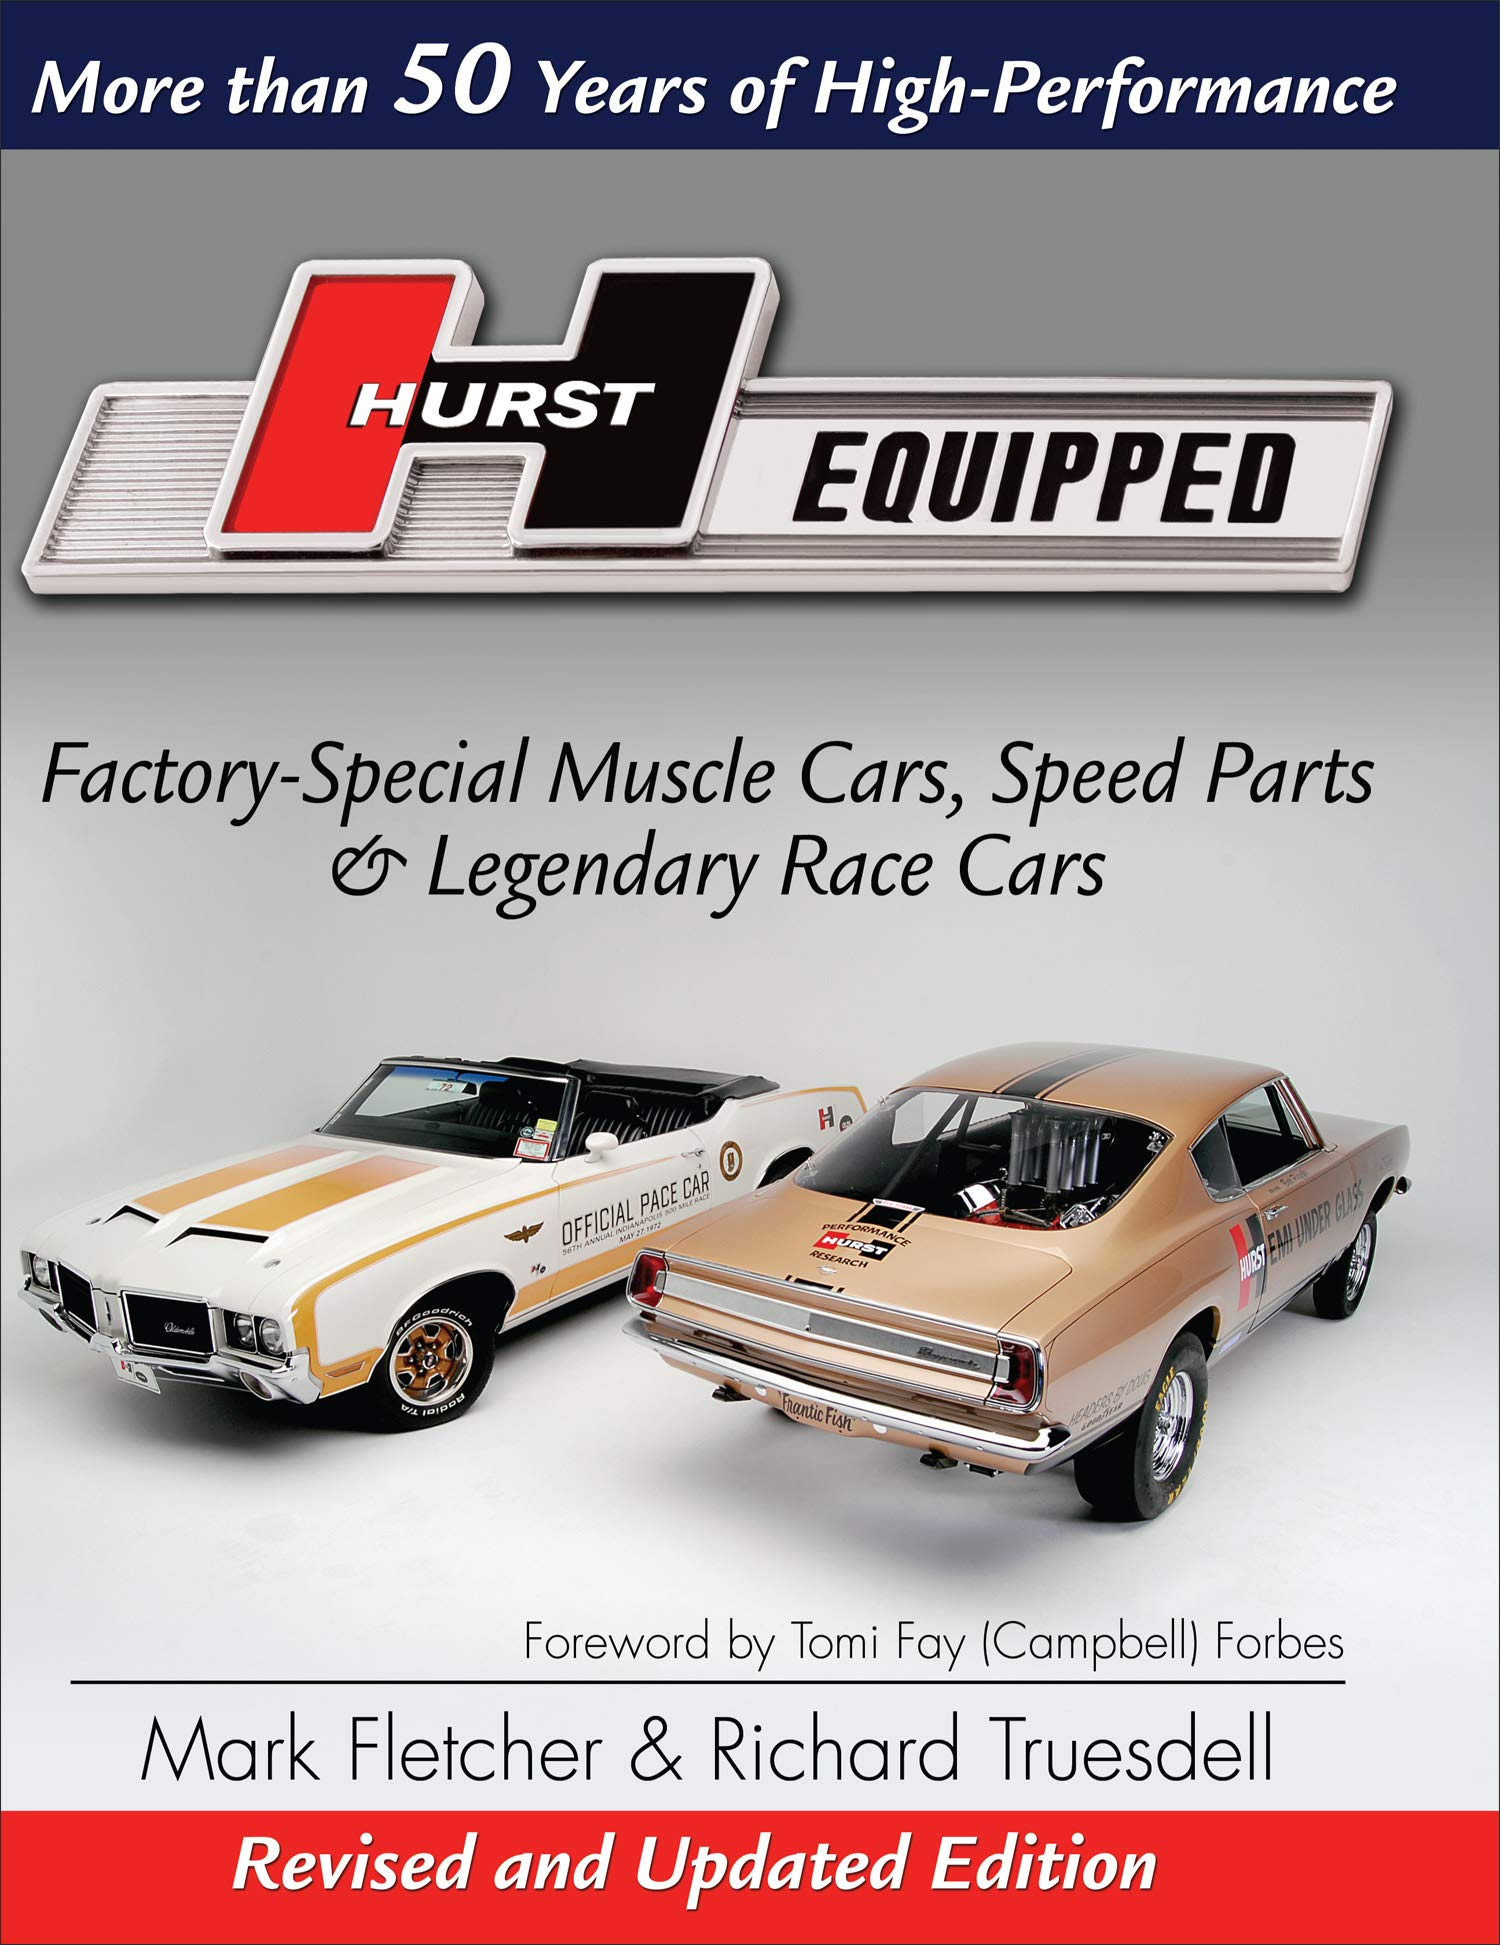 1968 Automobilia Free Shipping Included Retro Ads Muscle Cars 1960s HURST PERFORMANCE SHIFTER Vintage Car Ads Vintage Ads